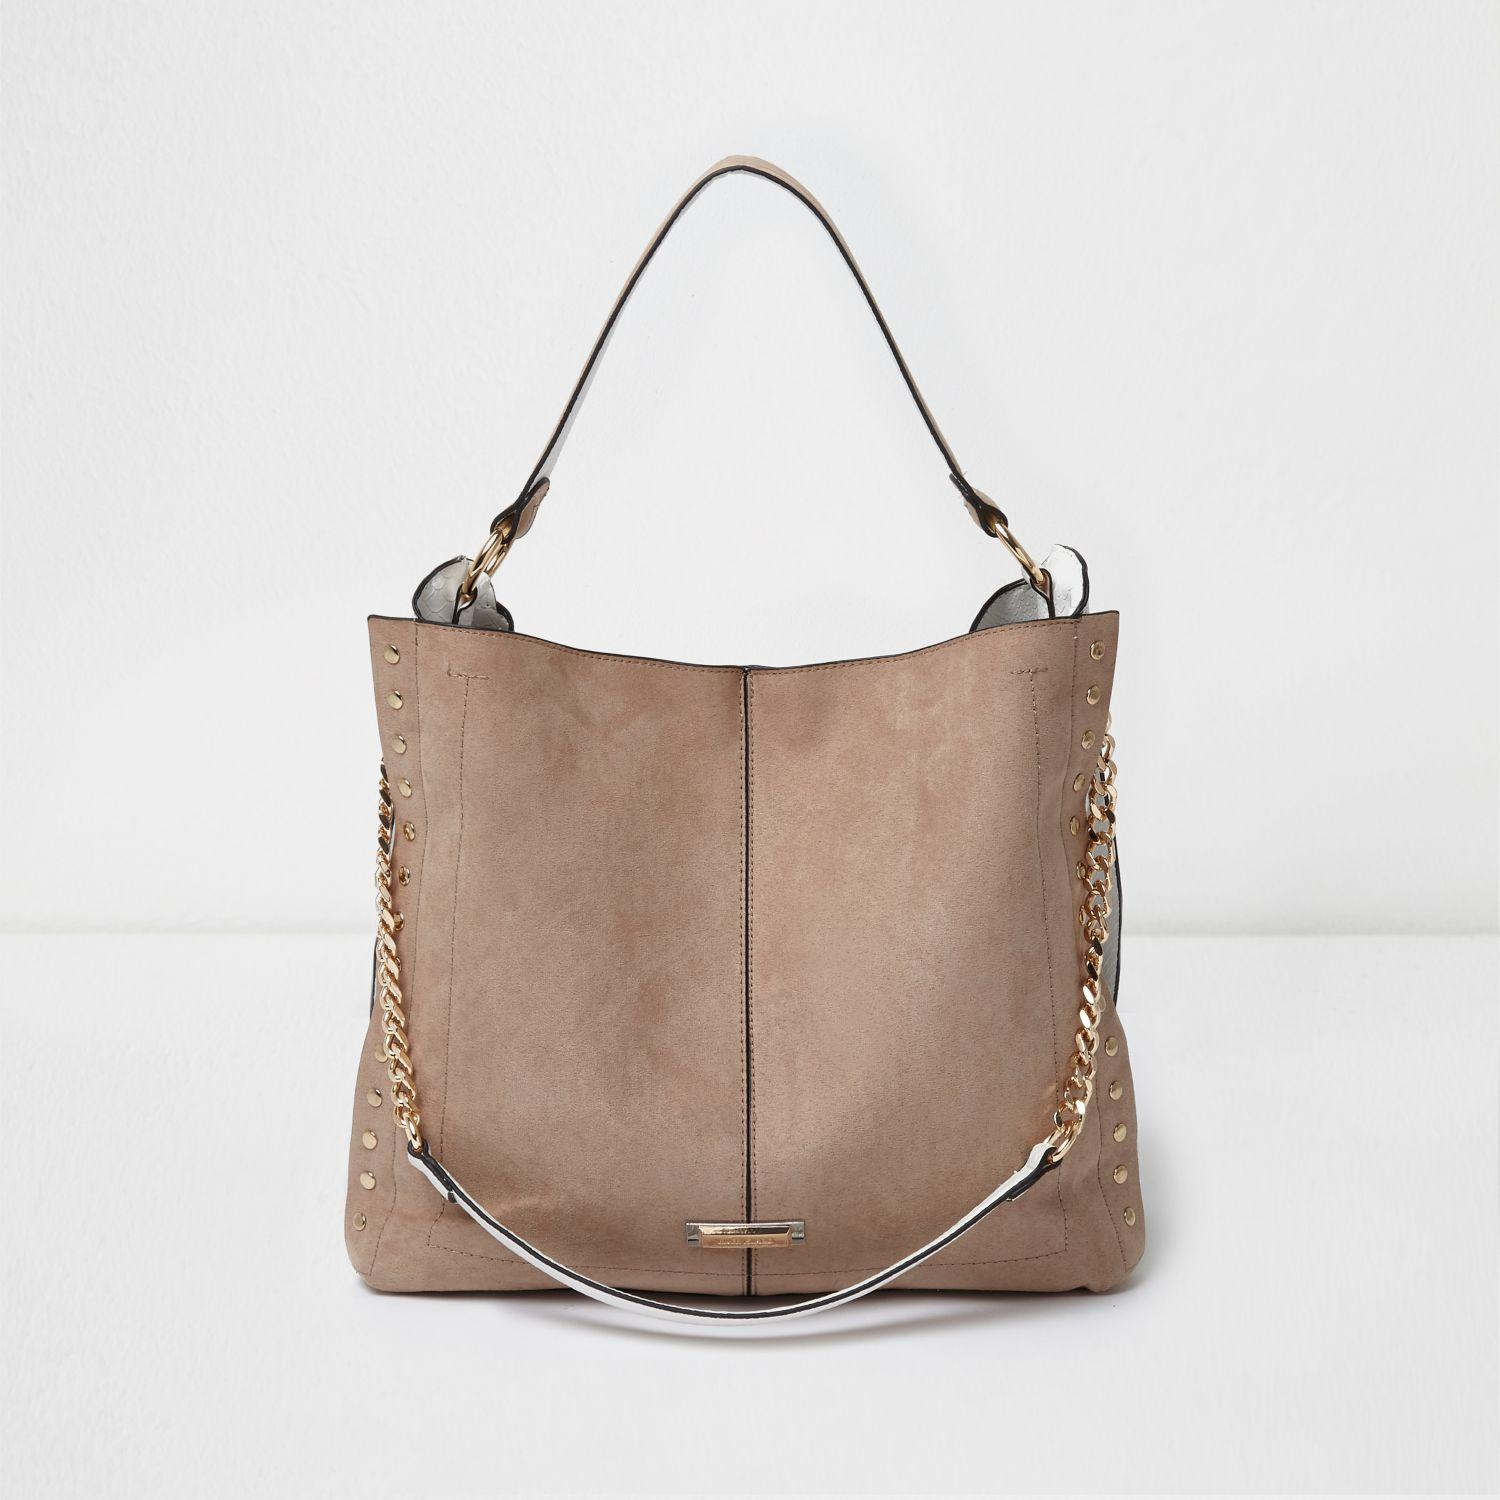 dd2d918c7ae148 River Island Stud Slouch Chain Shoulder Bag in Natural - Lyst